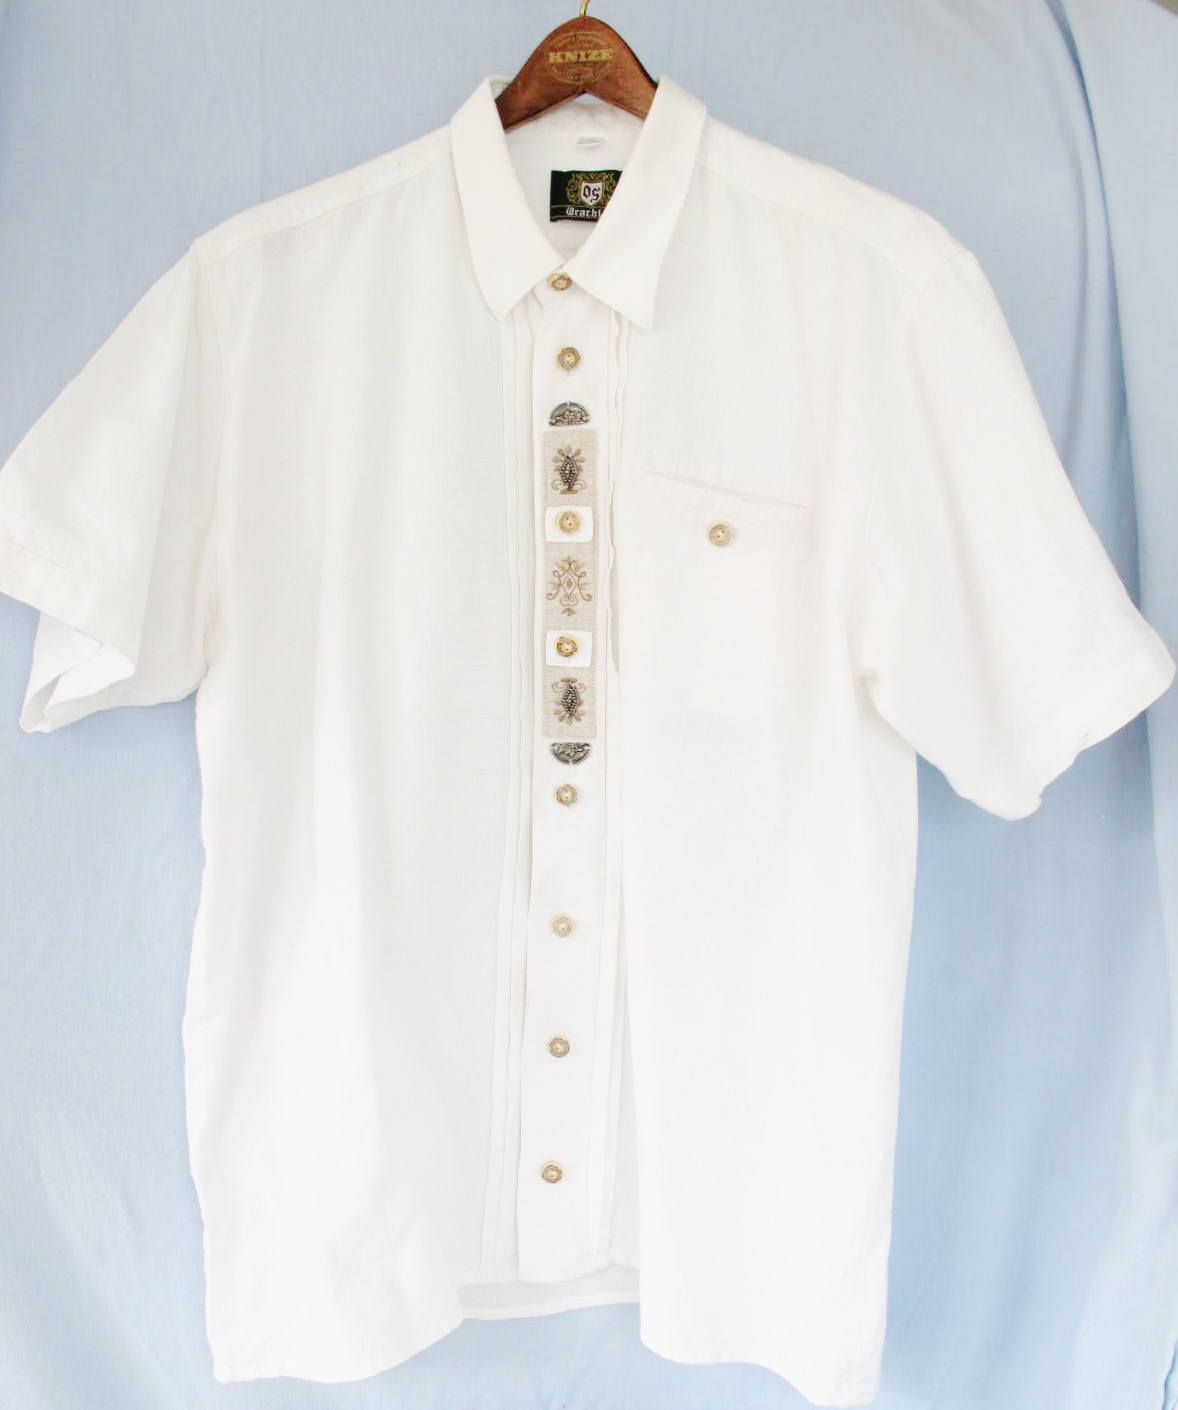 d8208fd5 Men TRACHTEN SHIRT, short sleeve, textured Cotton, Linen, Metal Edelweiss  Horn Buttons, Embroidery, XXL, Alpine, Bavarian, Austrian, ...